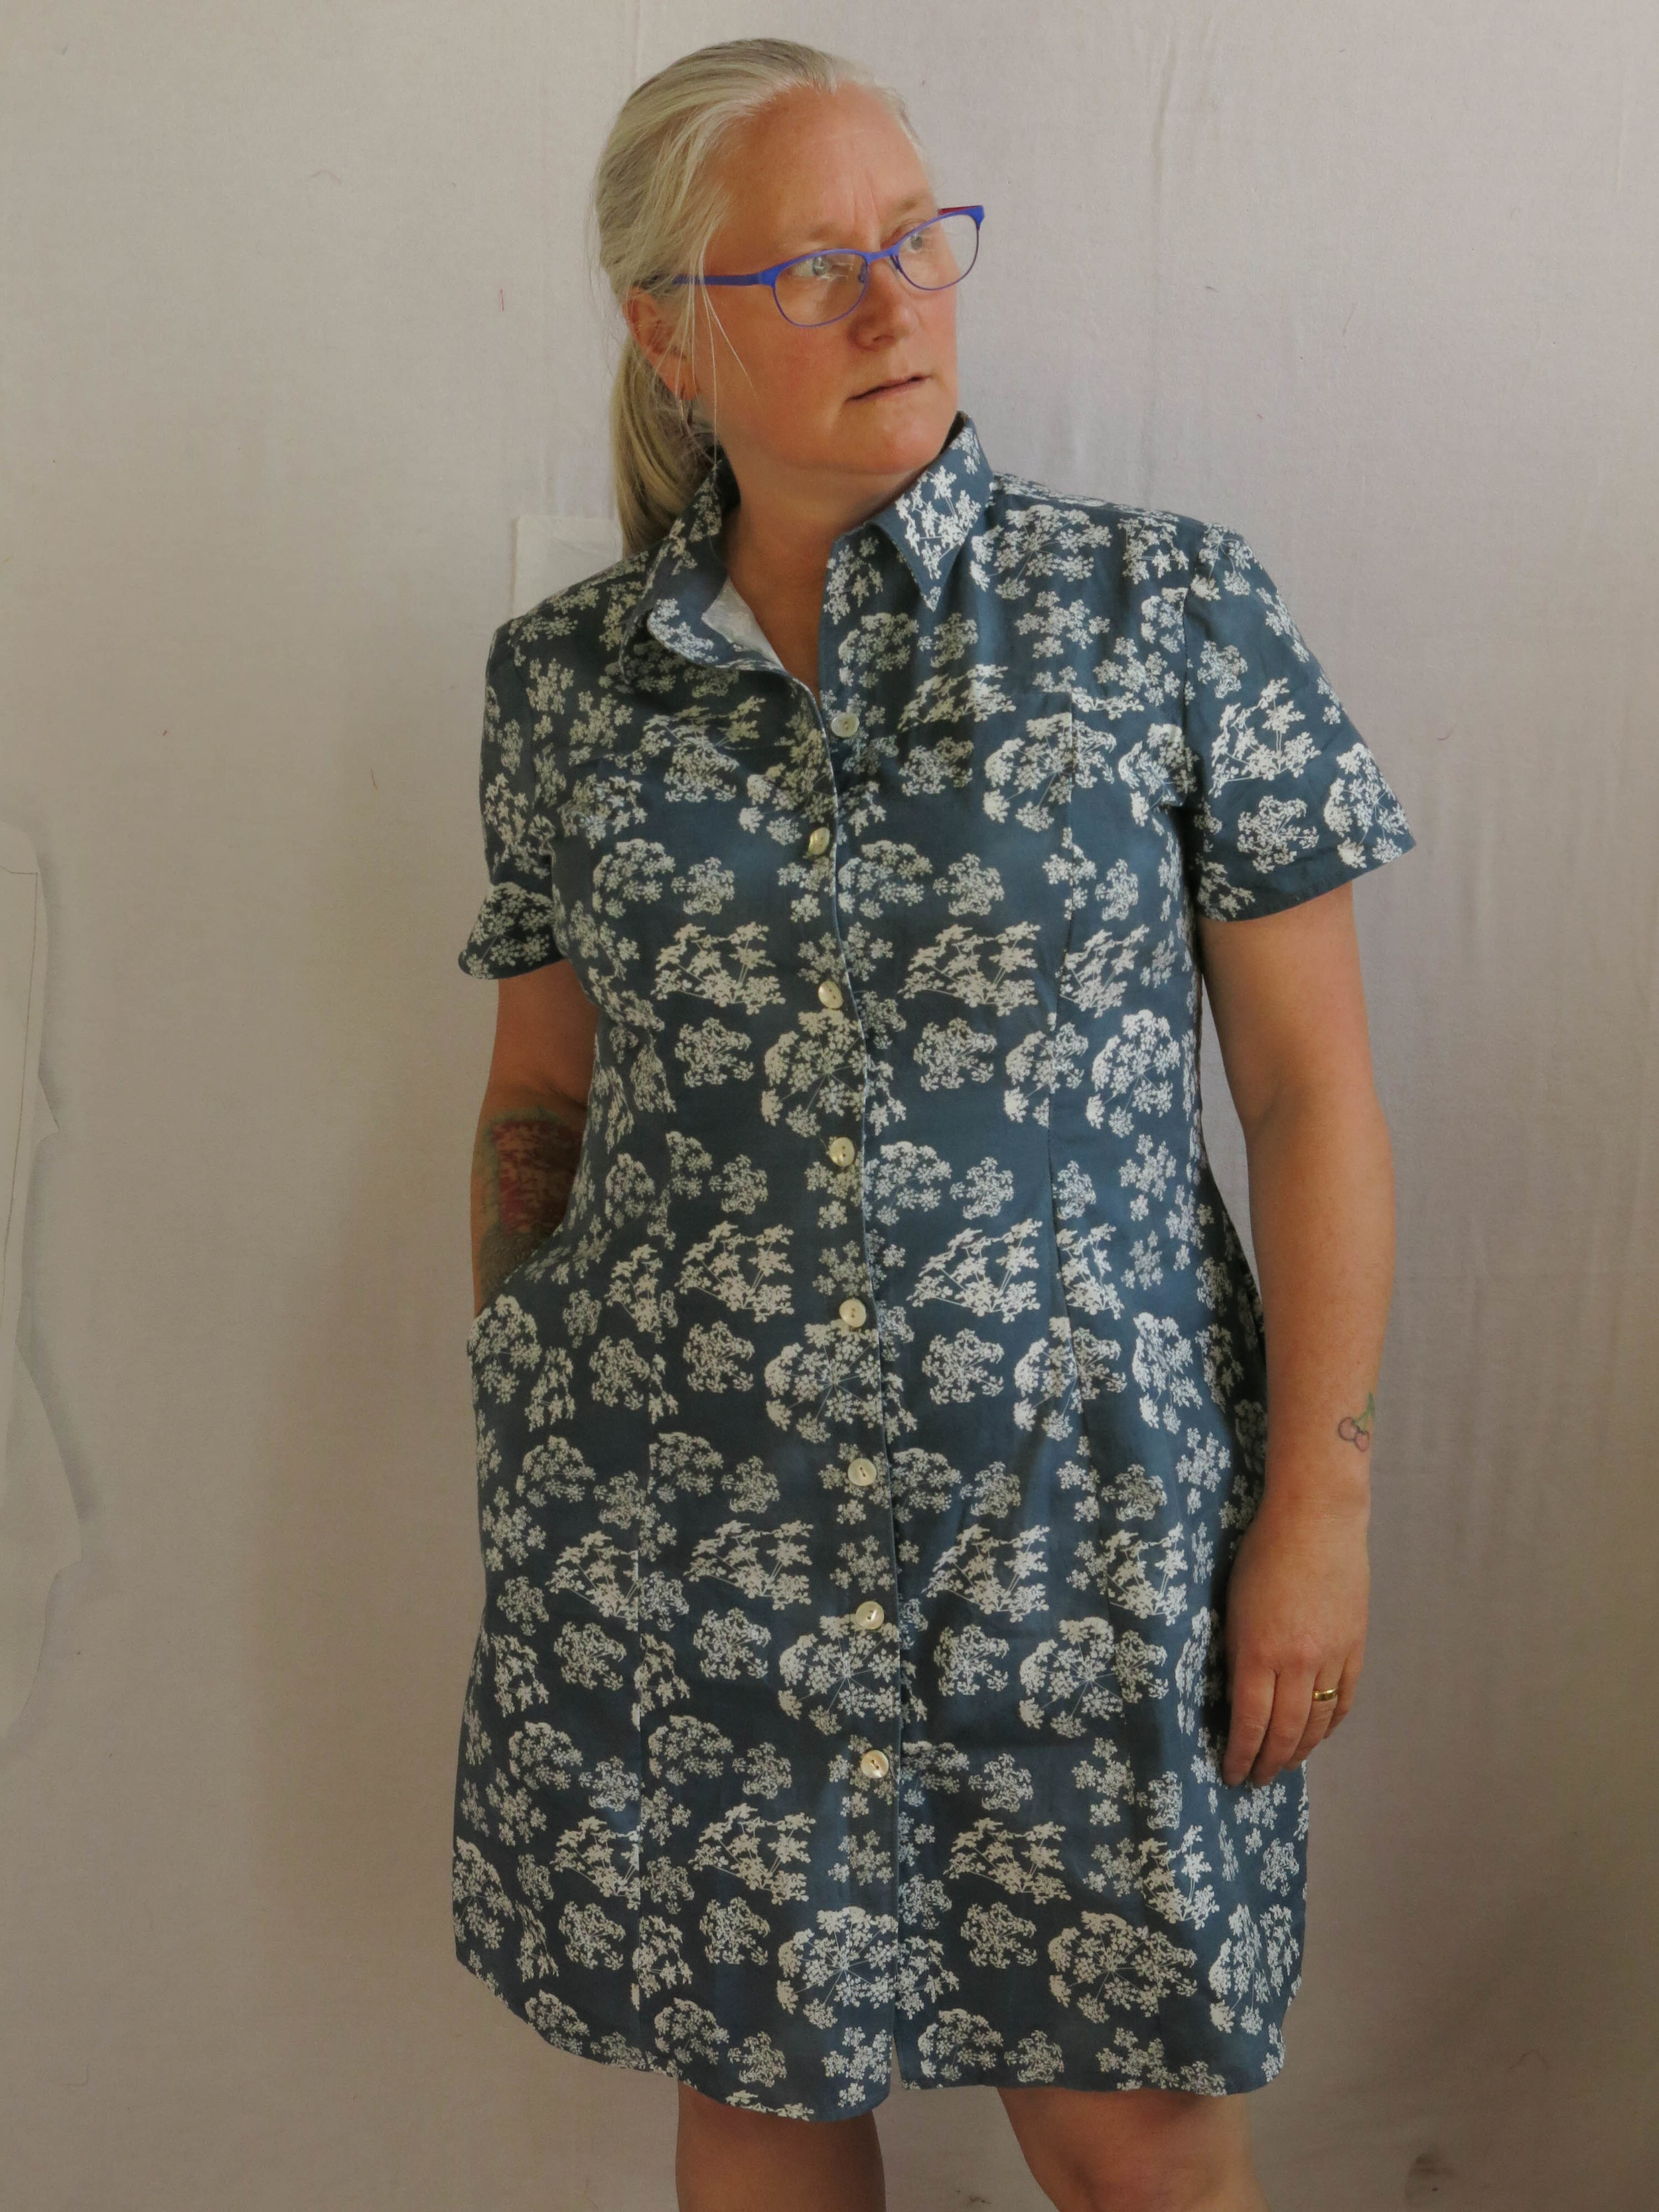 The Rosa dress that needs to be reproduced in some drapier fabric. Although it is quite lovely in this By Hand London poplin, in a farmer girl sort of way....